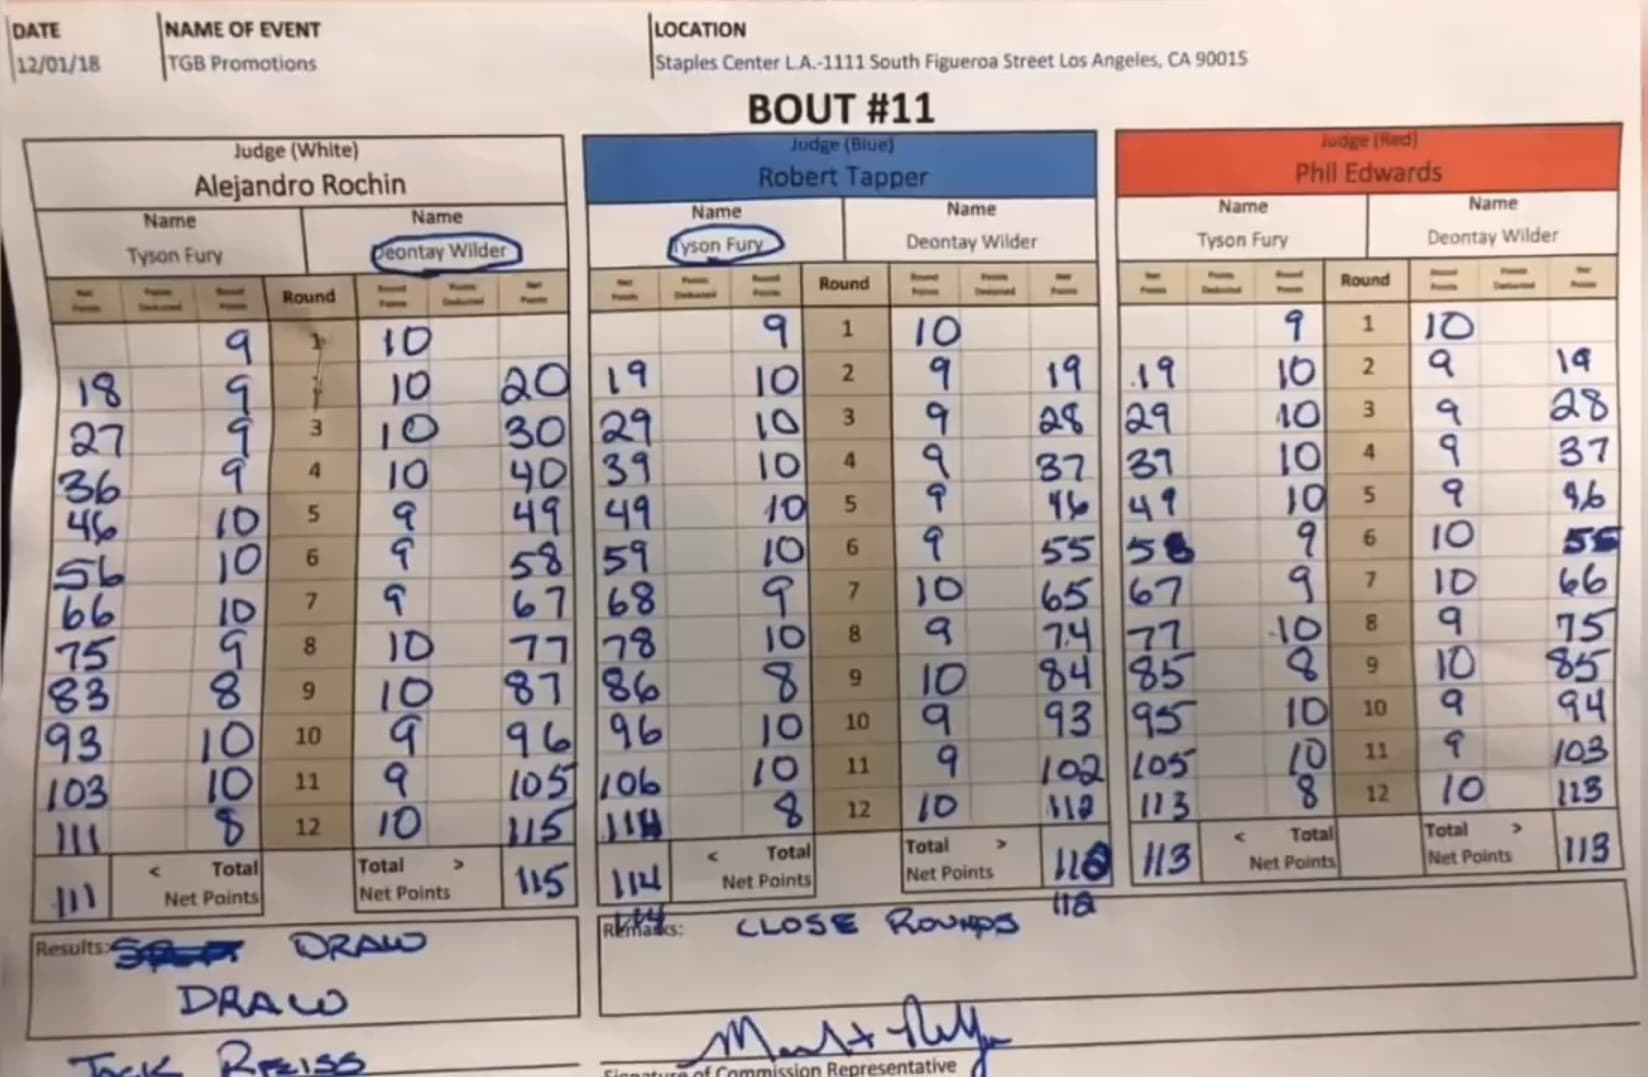 Boxing Scoring System: How Are Boxing Fights Scored?